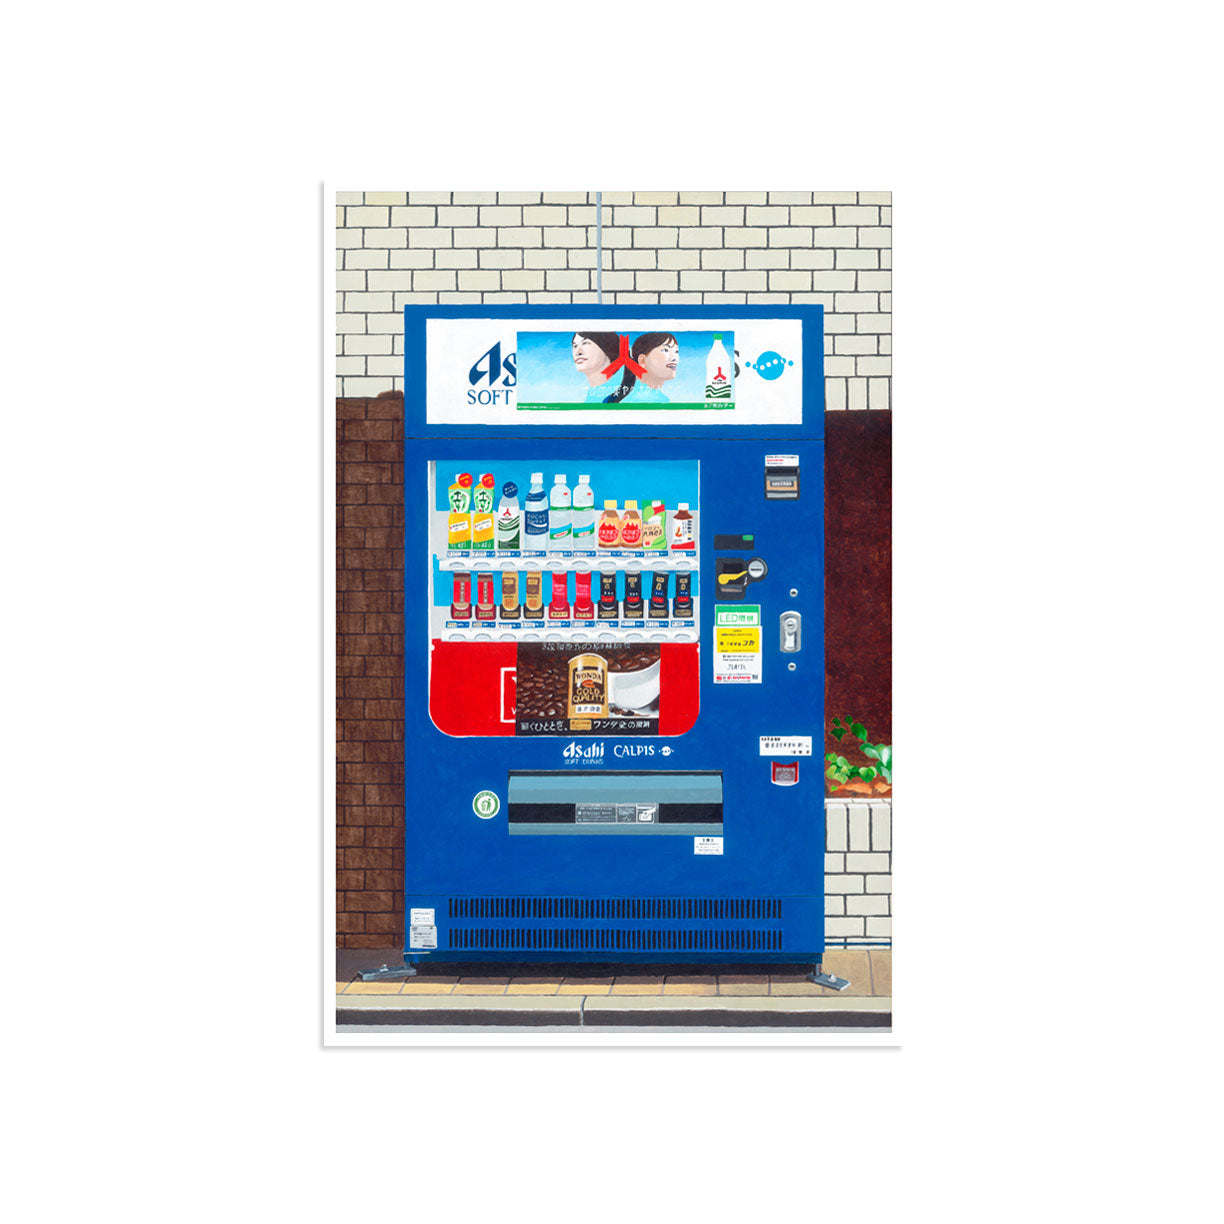 Japanese Vending Machine No. 2 by Horace Panter-Print-Poster Child Prints